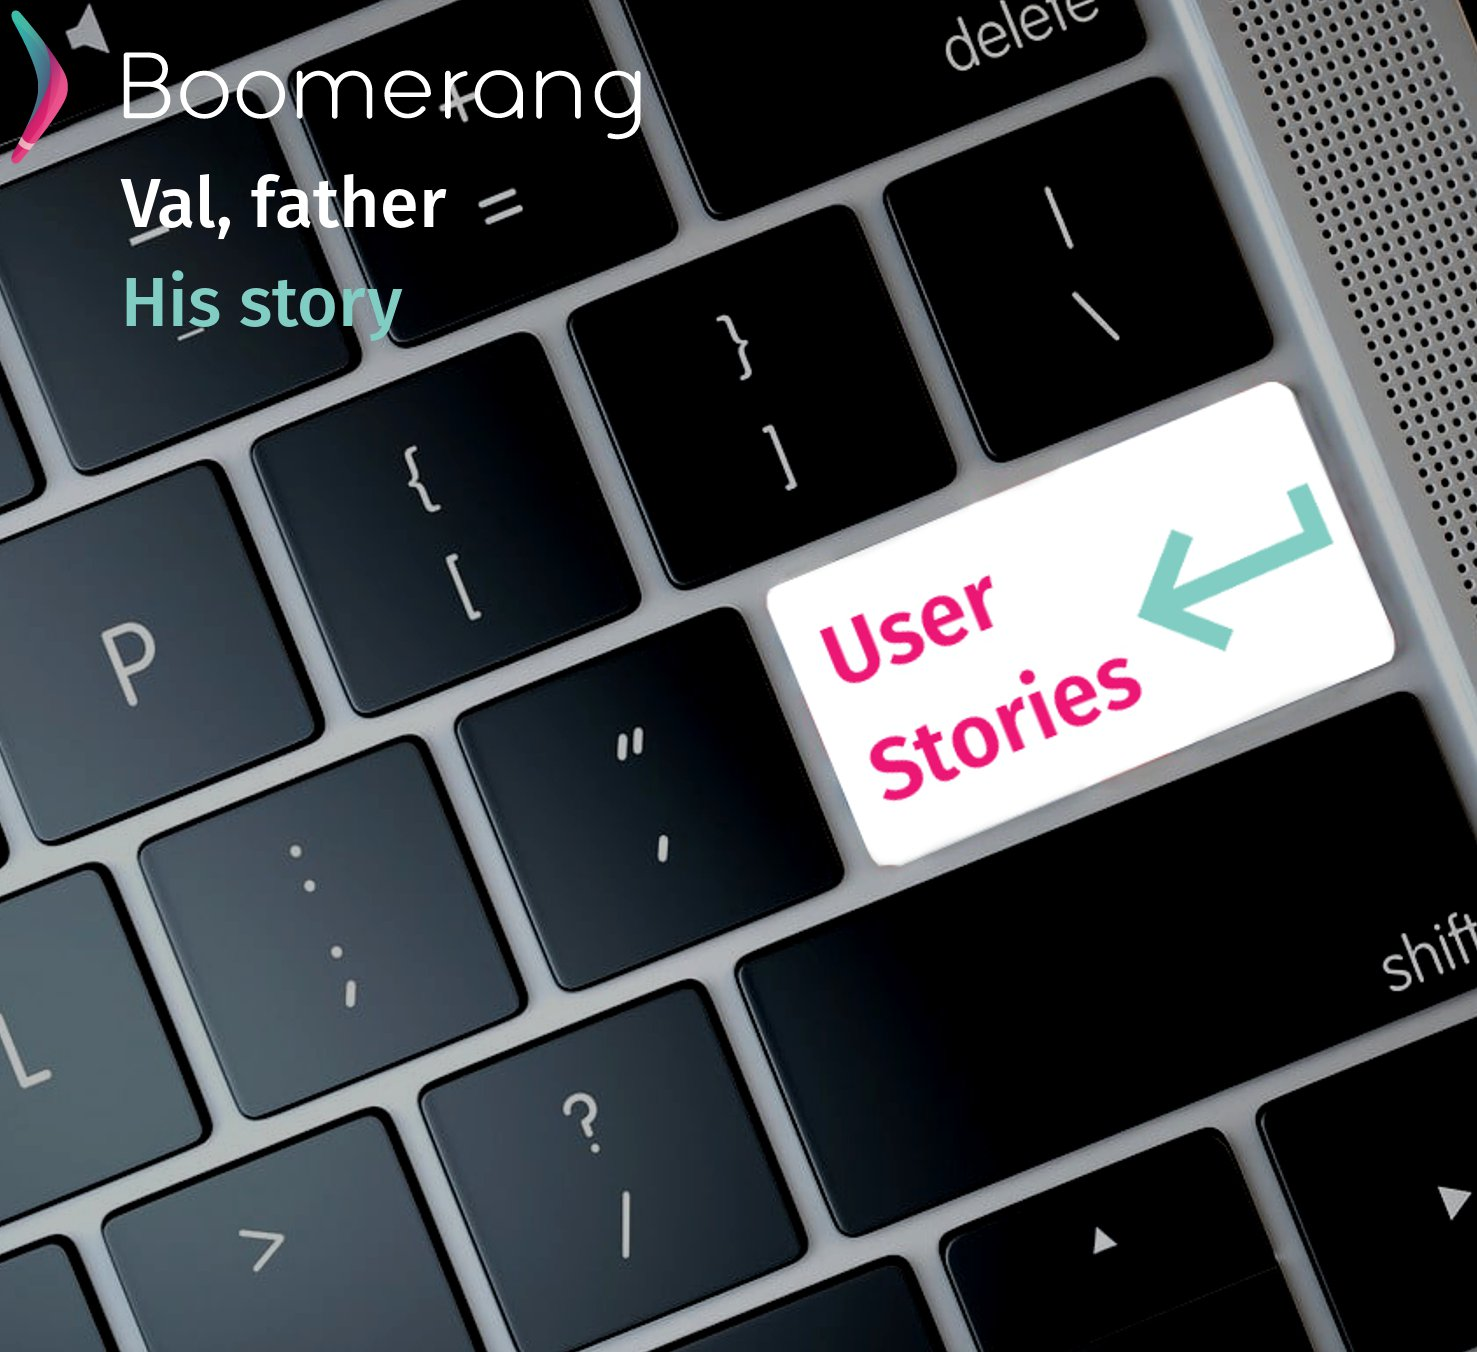 Boomerang User Stories - Val